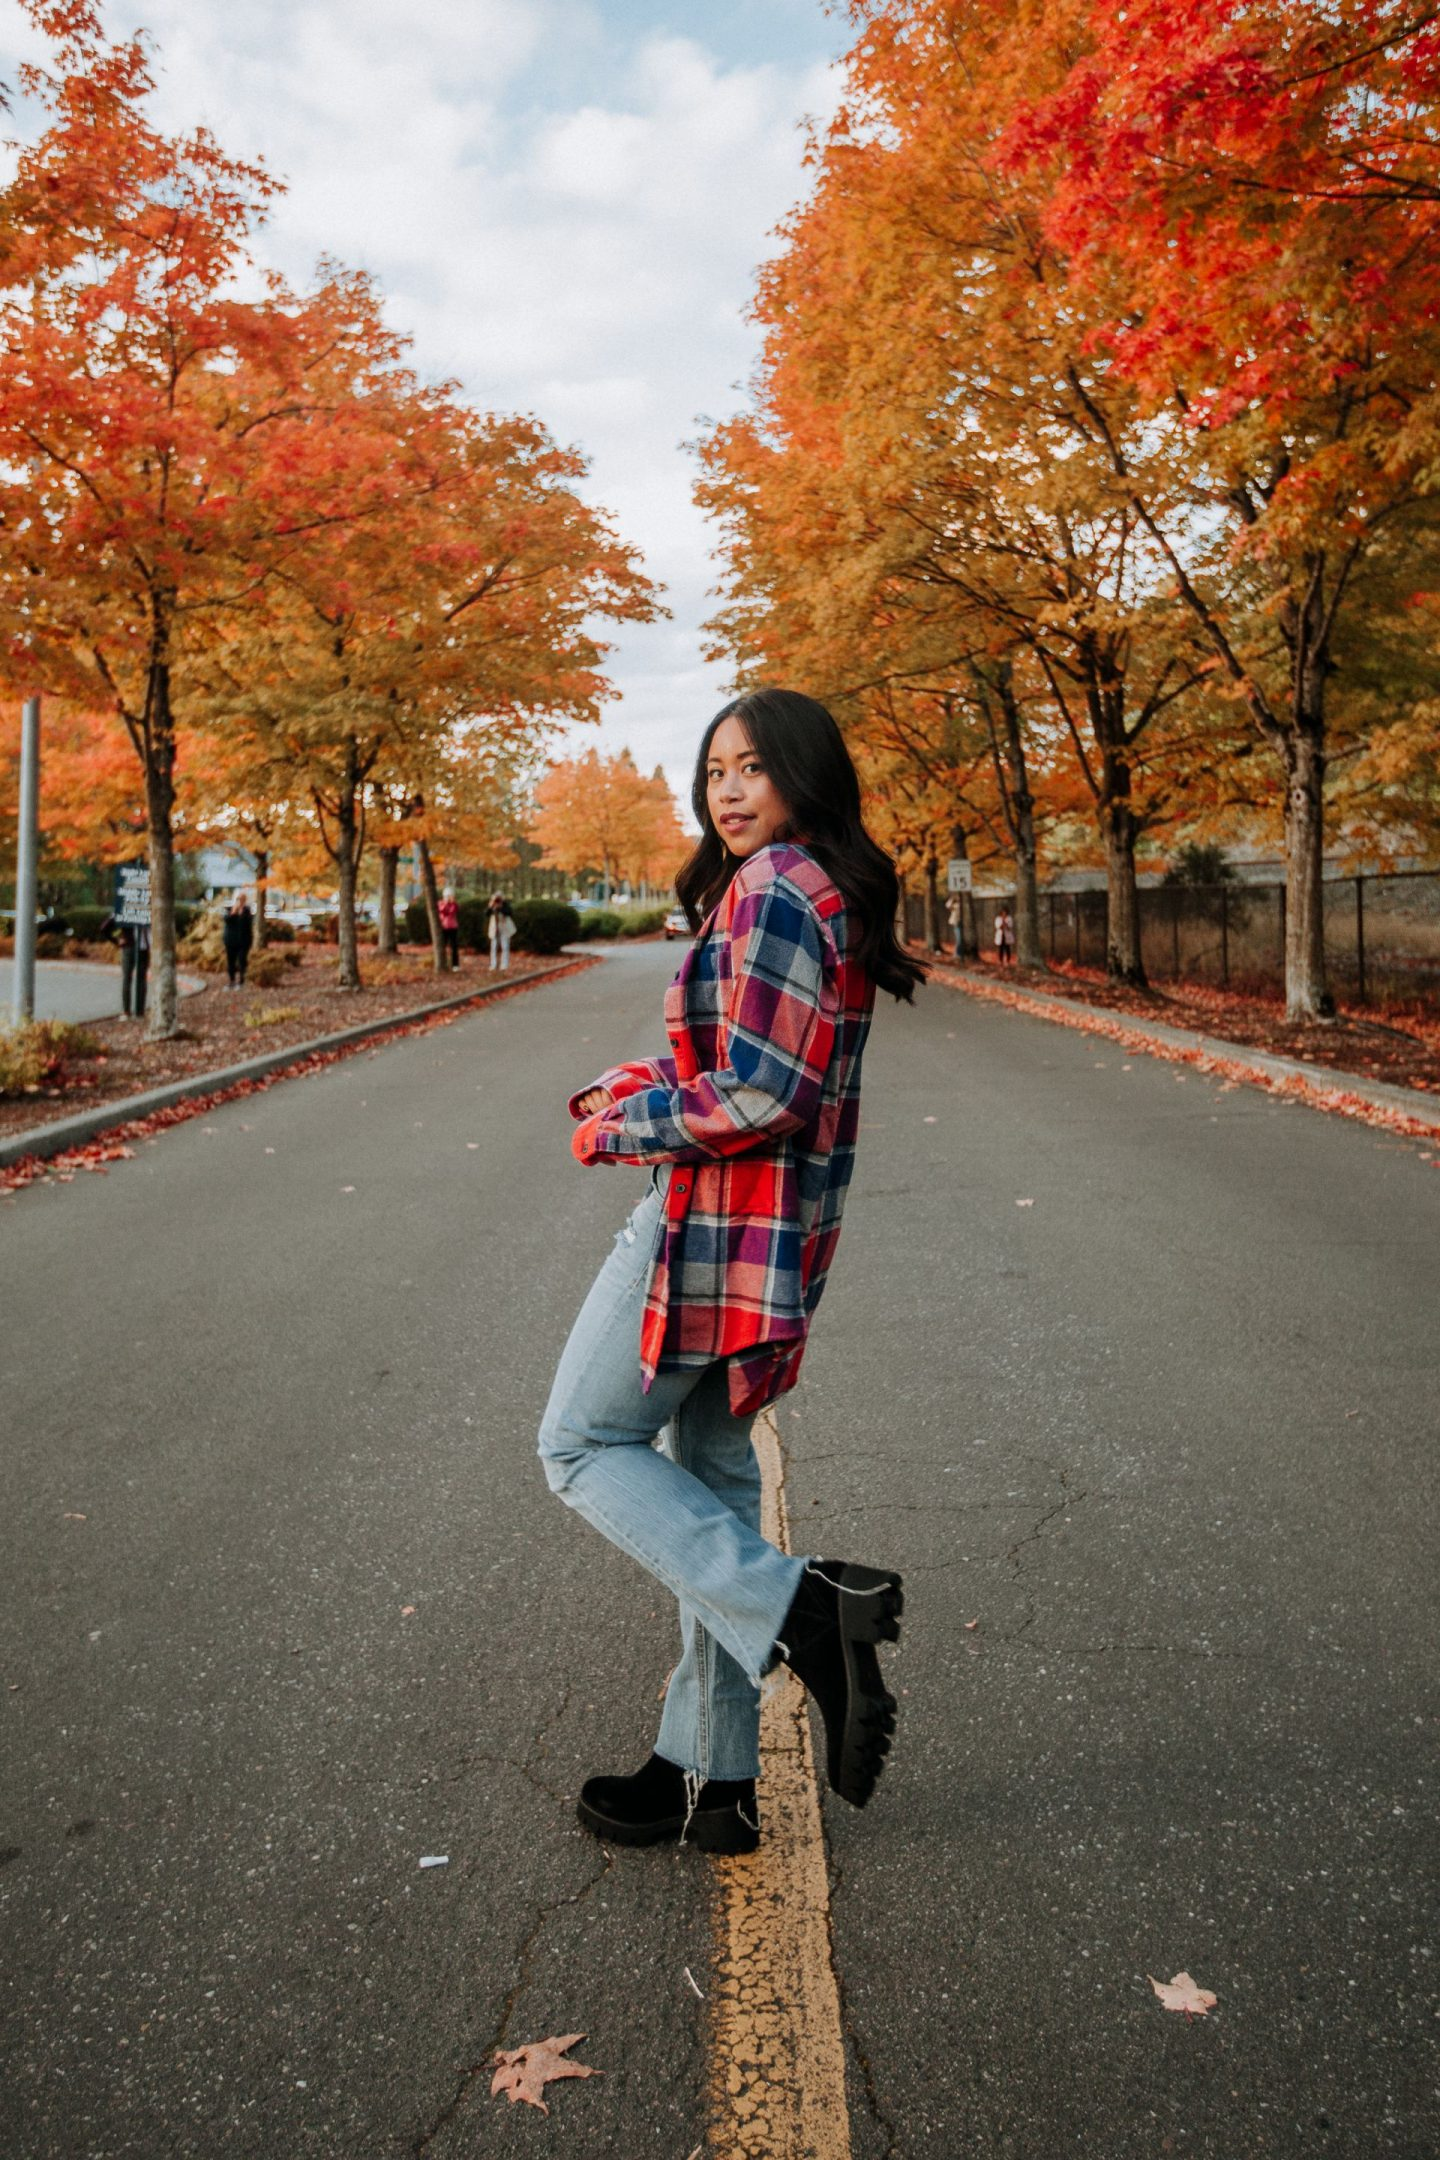 Shacket - oversized plaid jacket - flannel outfit ideas -- Lug Boots - Fall Leaves in the Pacific Northwest - Fall outfit ideas for women - - image copyright @emmasedition - www.emmasedition.com